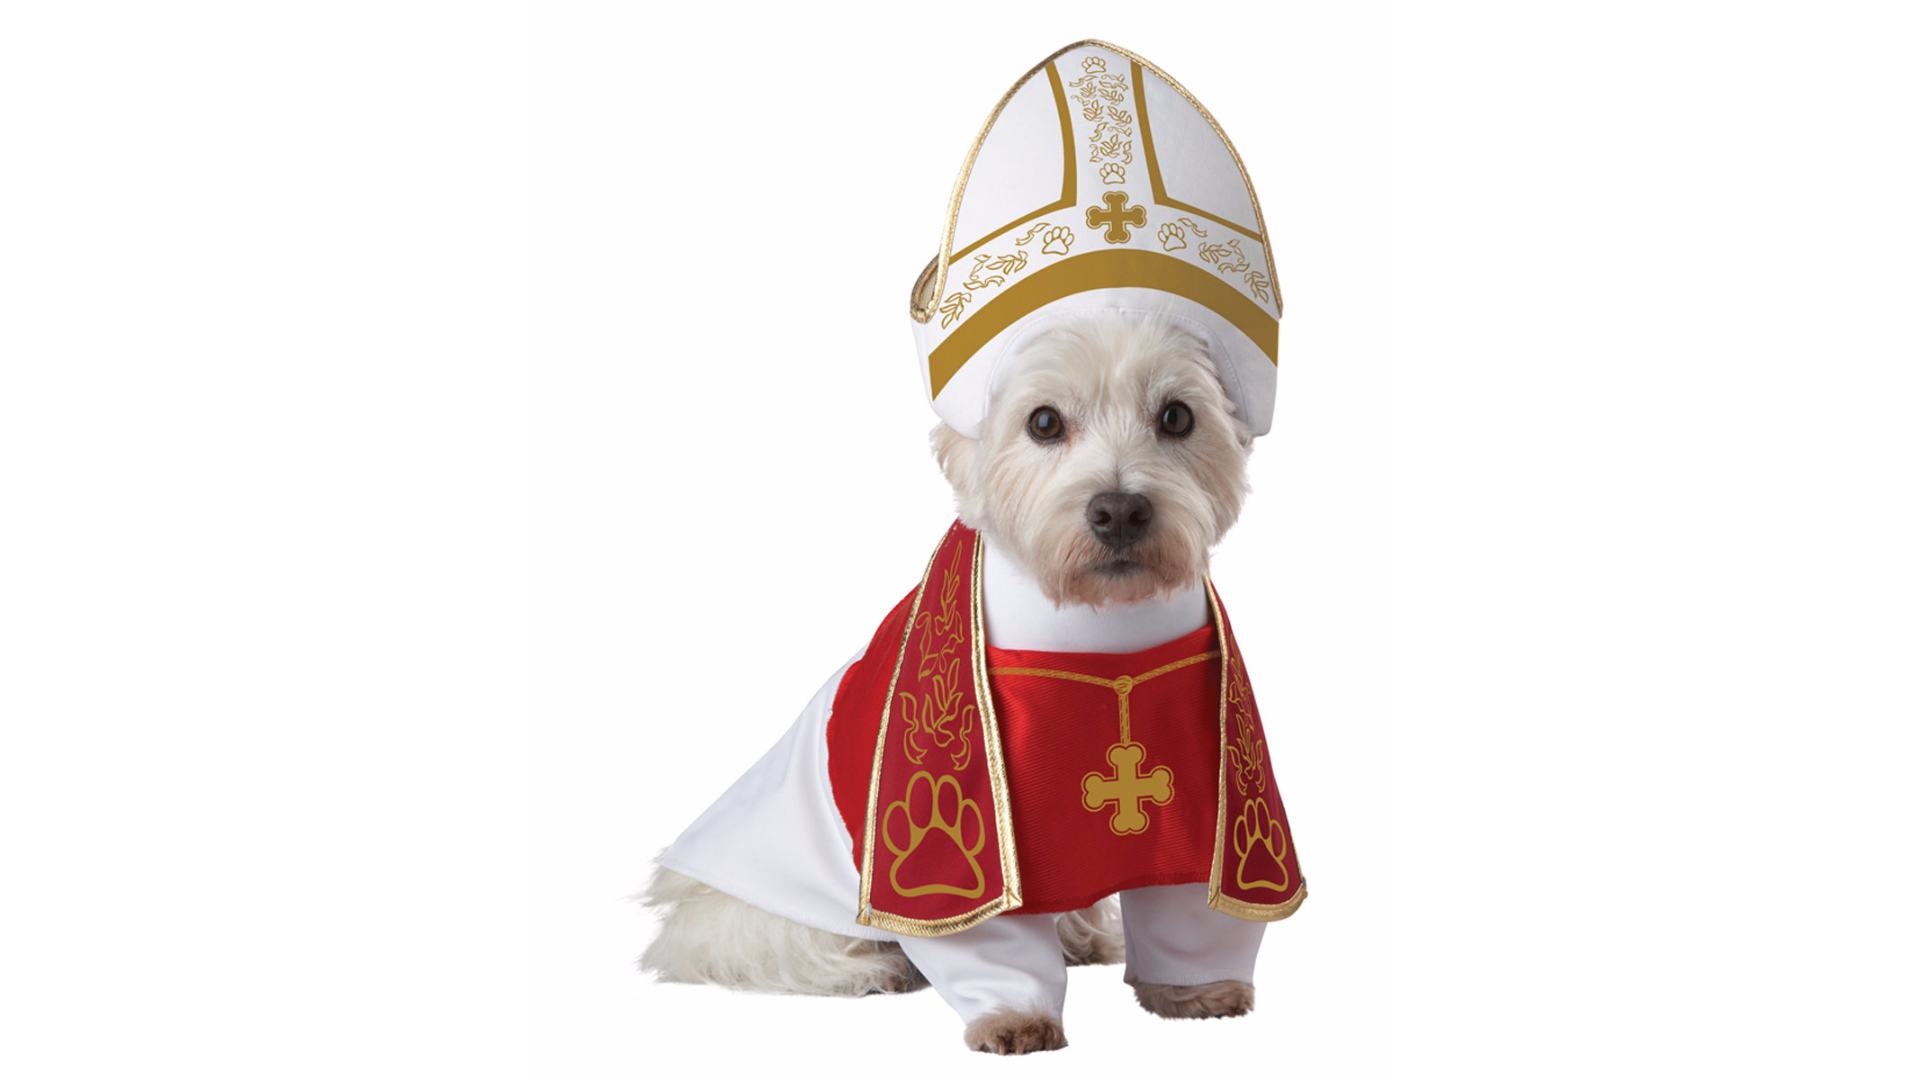 This most divine costume for a very good boy